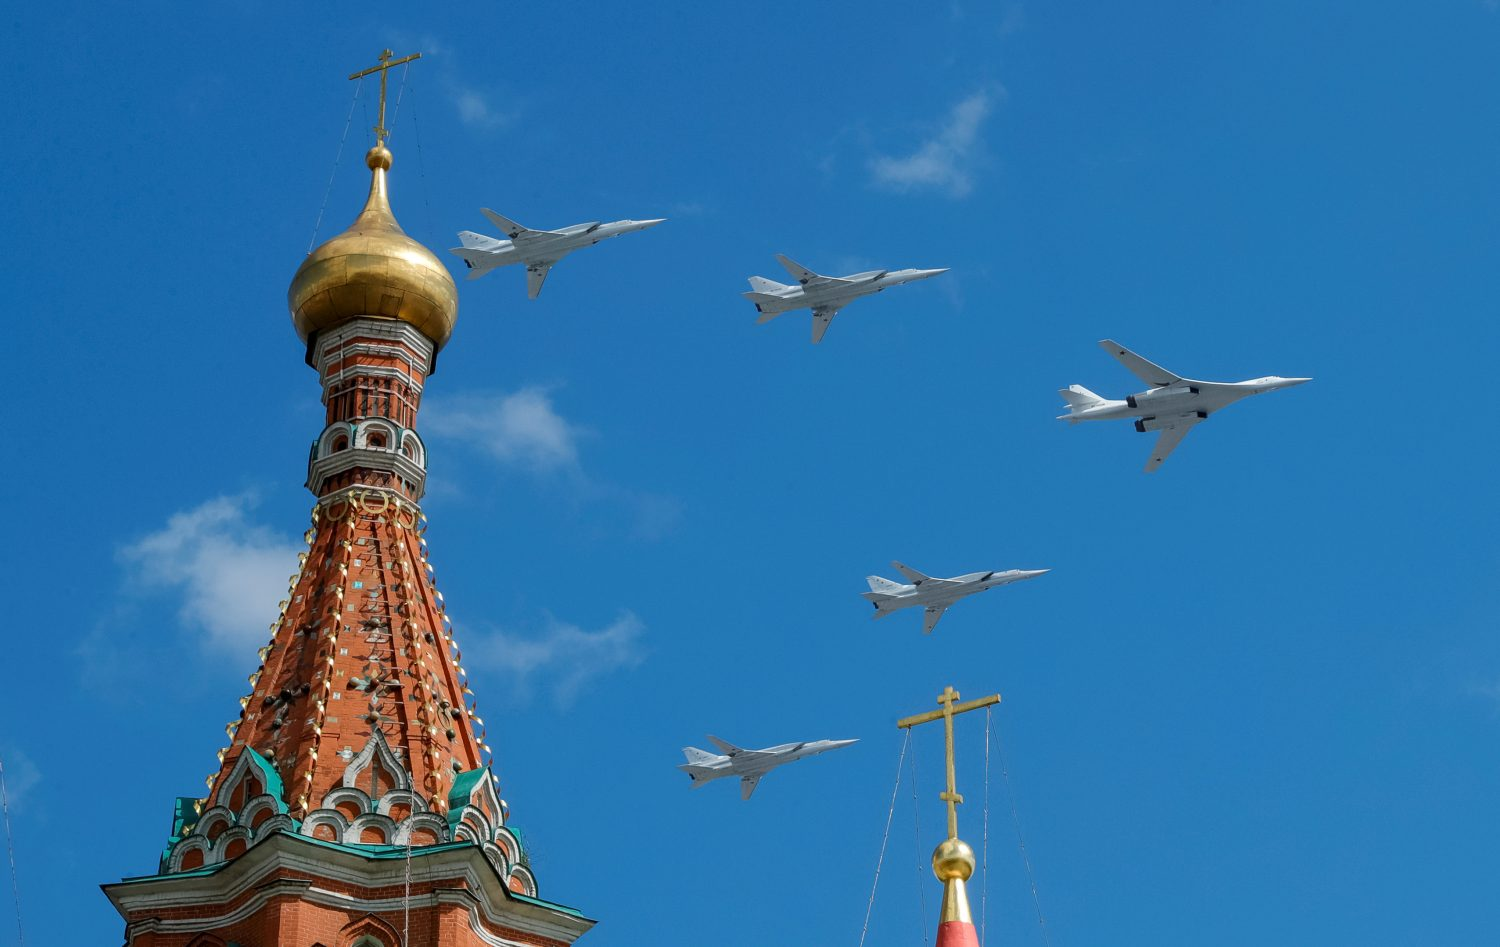 FILE PHOTO: Russian army Tupolev Tu-160 (R) and Tupolev Tu-22M3 fly in formation over St. Basil's Cathedral during the rehearsal for the Victory Day parade in Moscow, Russia May 4, 2019. REUTERS/Tatyana Makeyeva/File Photo